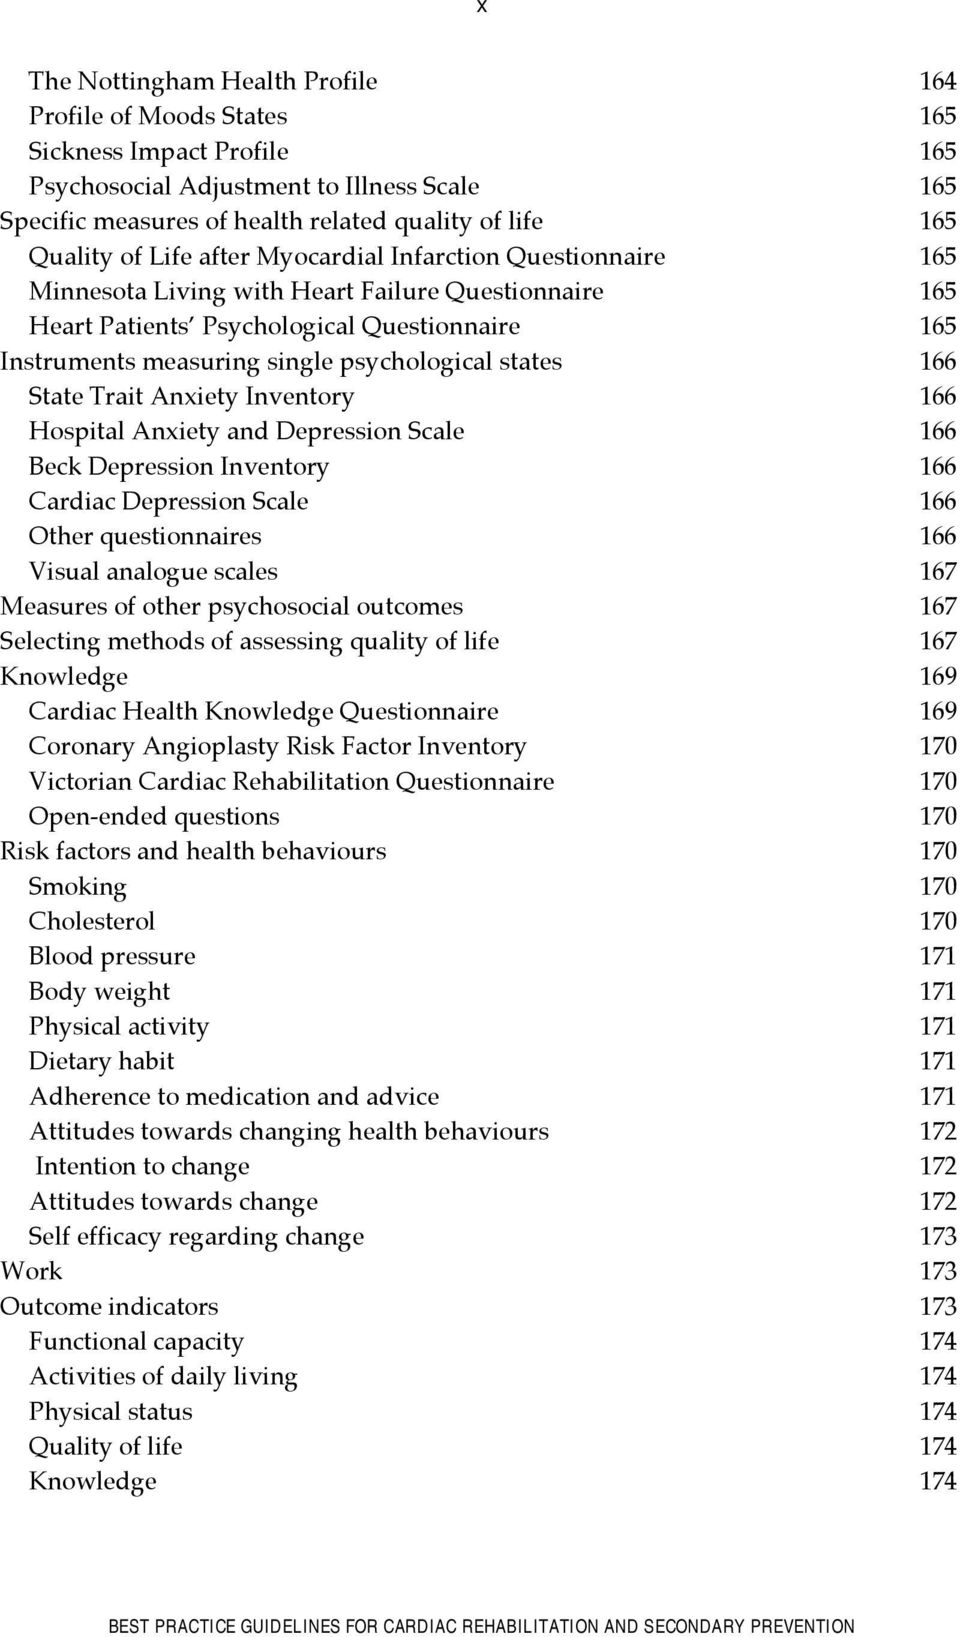 psychological states 166 State Trait Anxiety Inventory 166 Hospital Anxiety and Depression Scale 166 Beck Depression Inventory 166 Cardiac Depression Scale 166 Other questionnaires 166 Visual